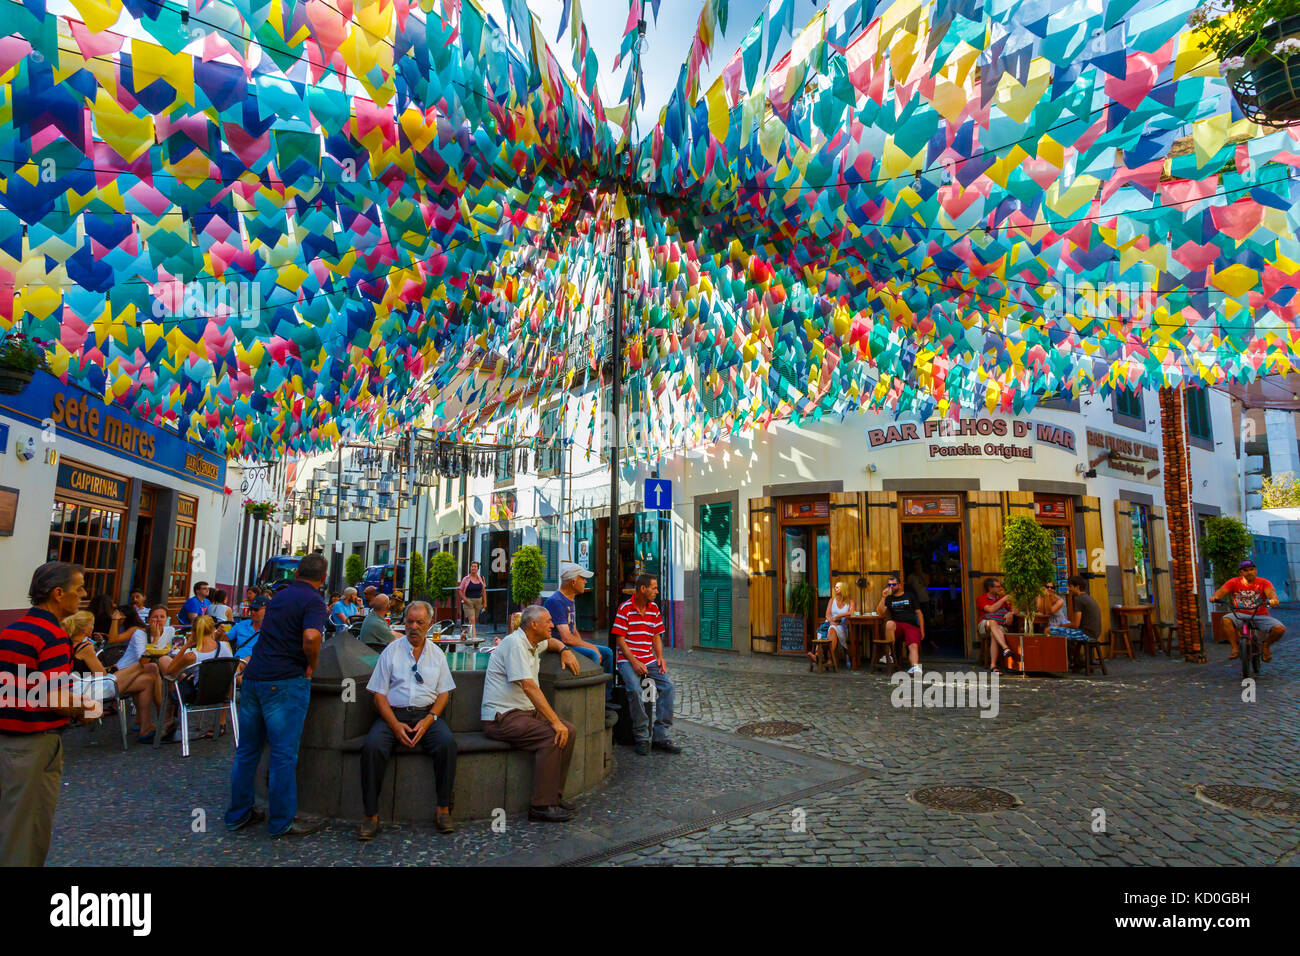 Atmosphere in a village square. - Stock Image